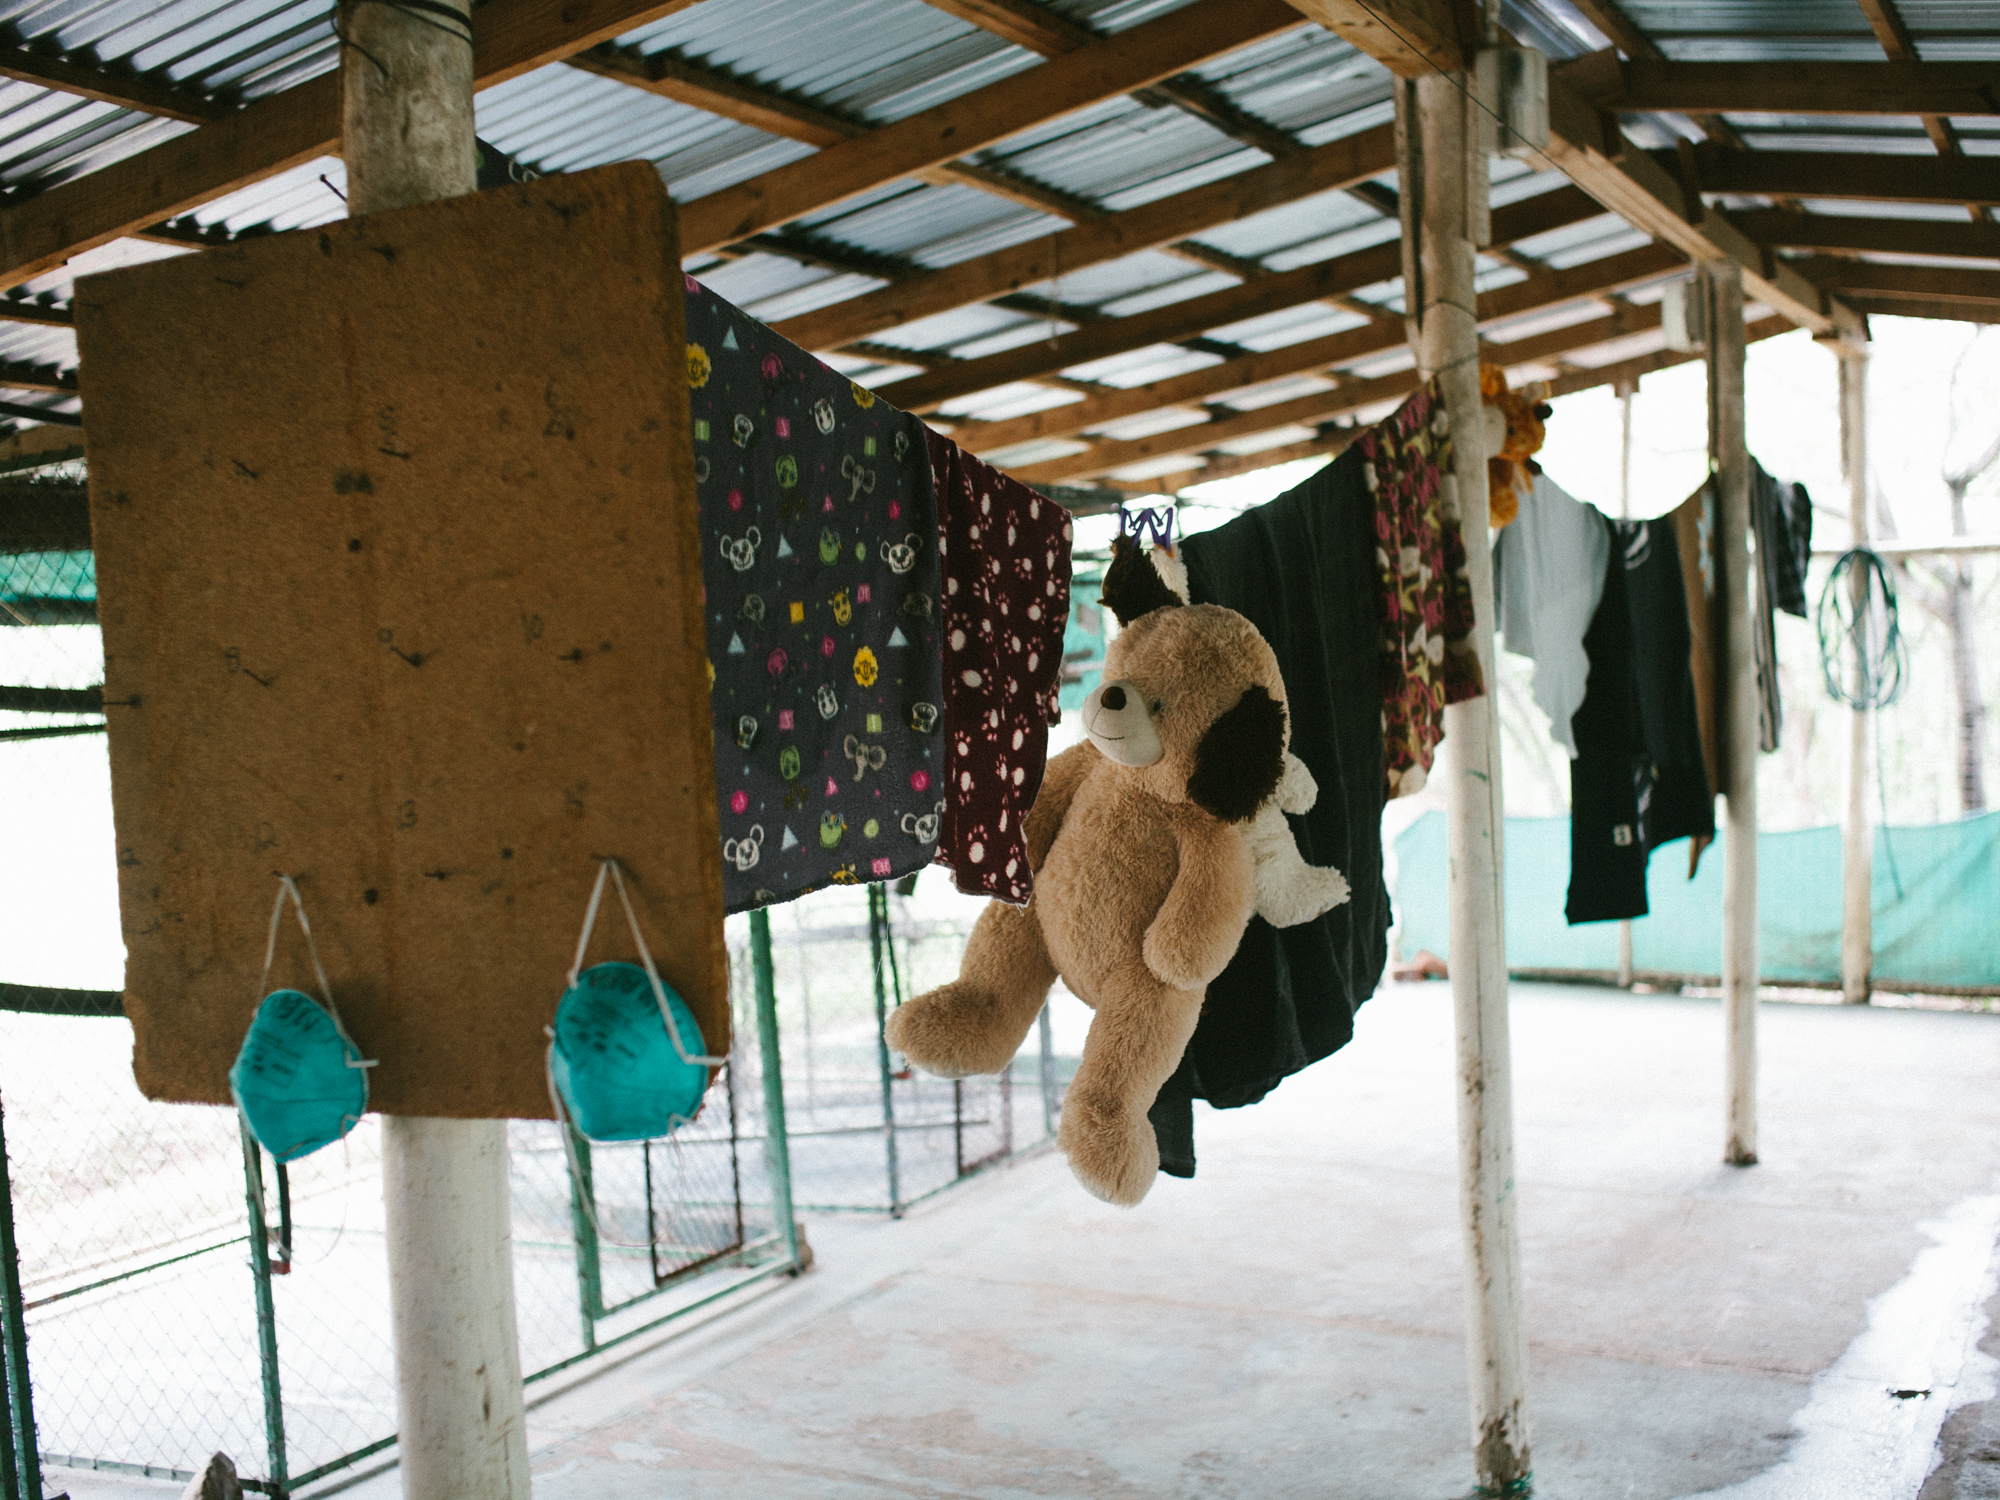 Sick Bay, where sick and injured vervets are treated.